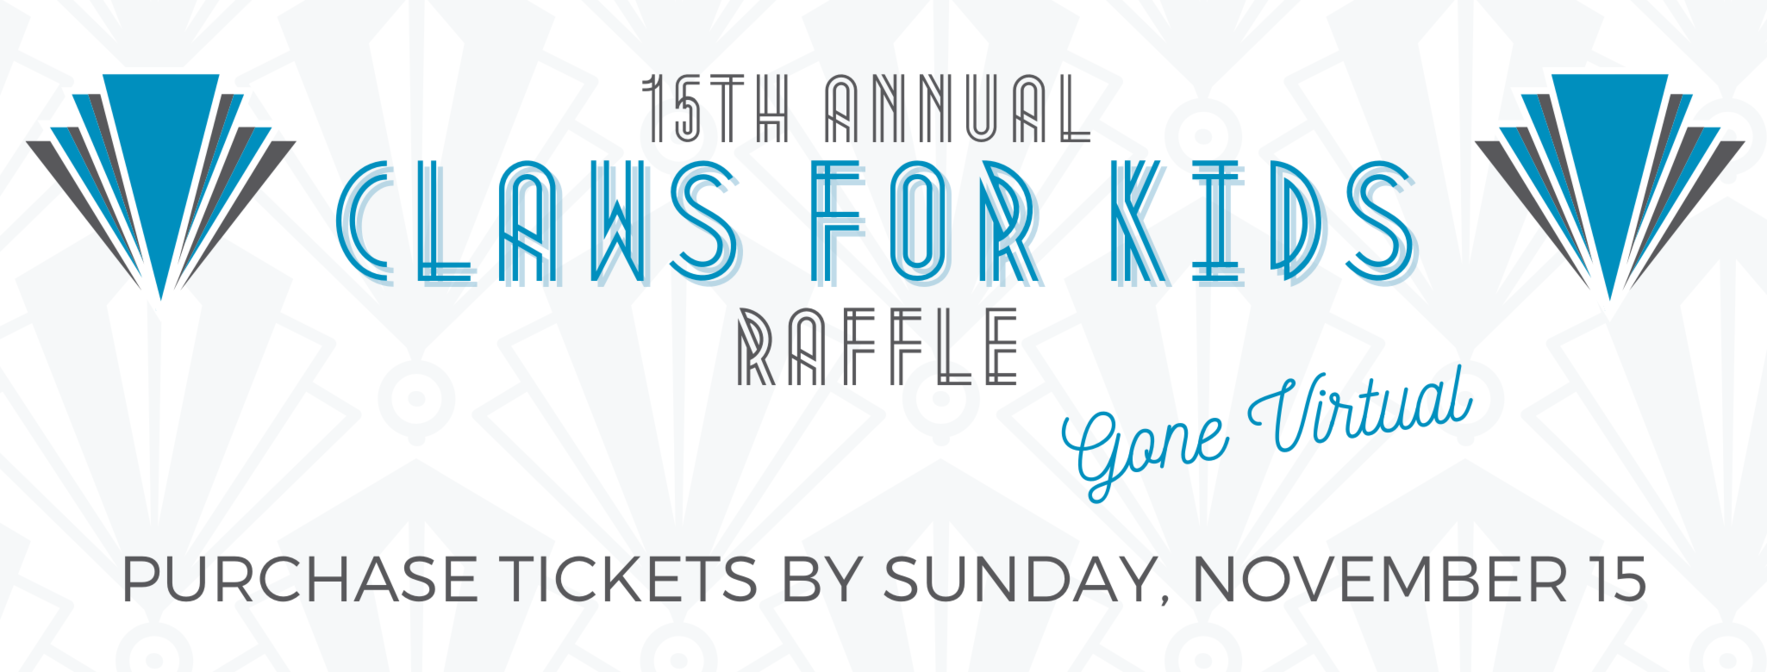 Claws for Kids Raffle  image